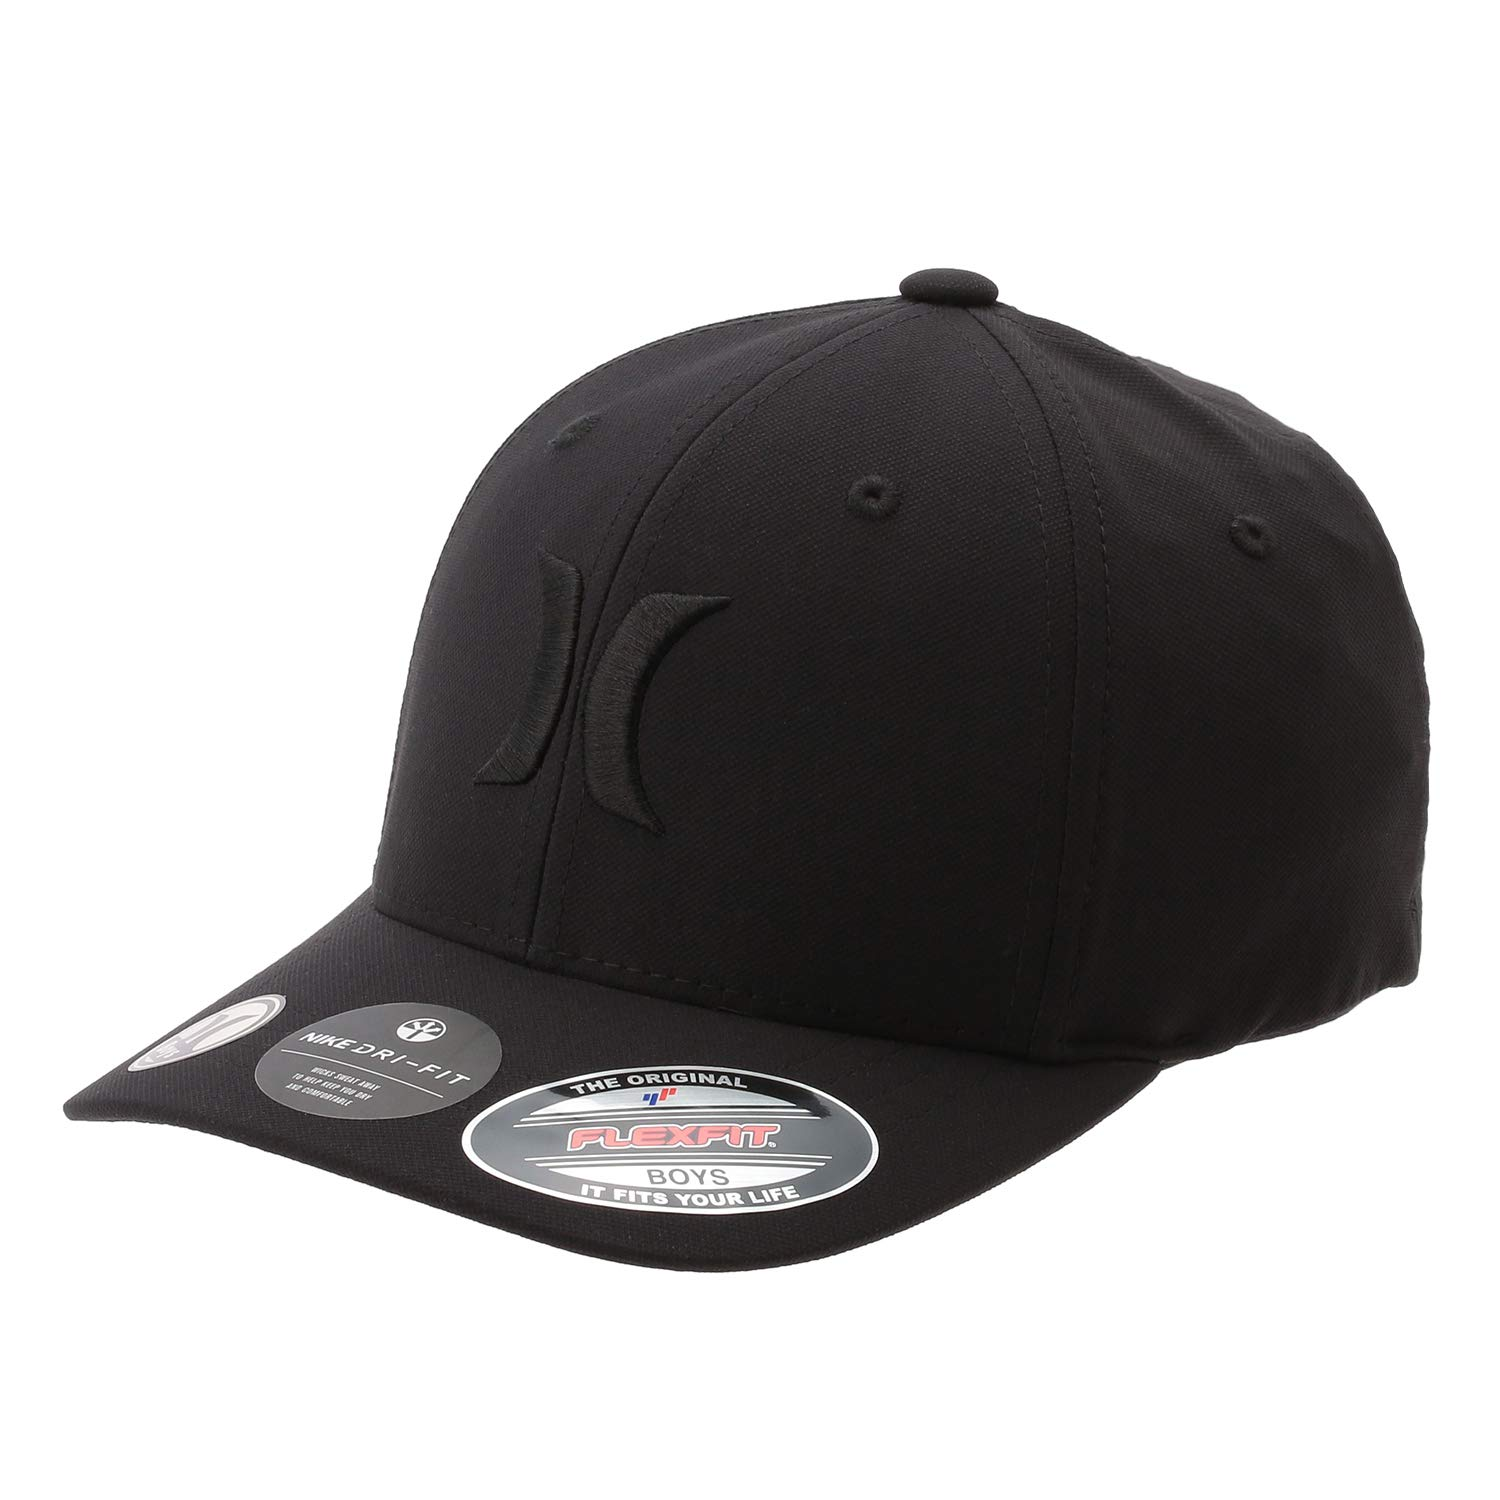 d361d6a54 Hurley Men's Boys Dri-Fit One and Only Hat